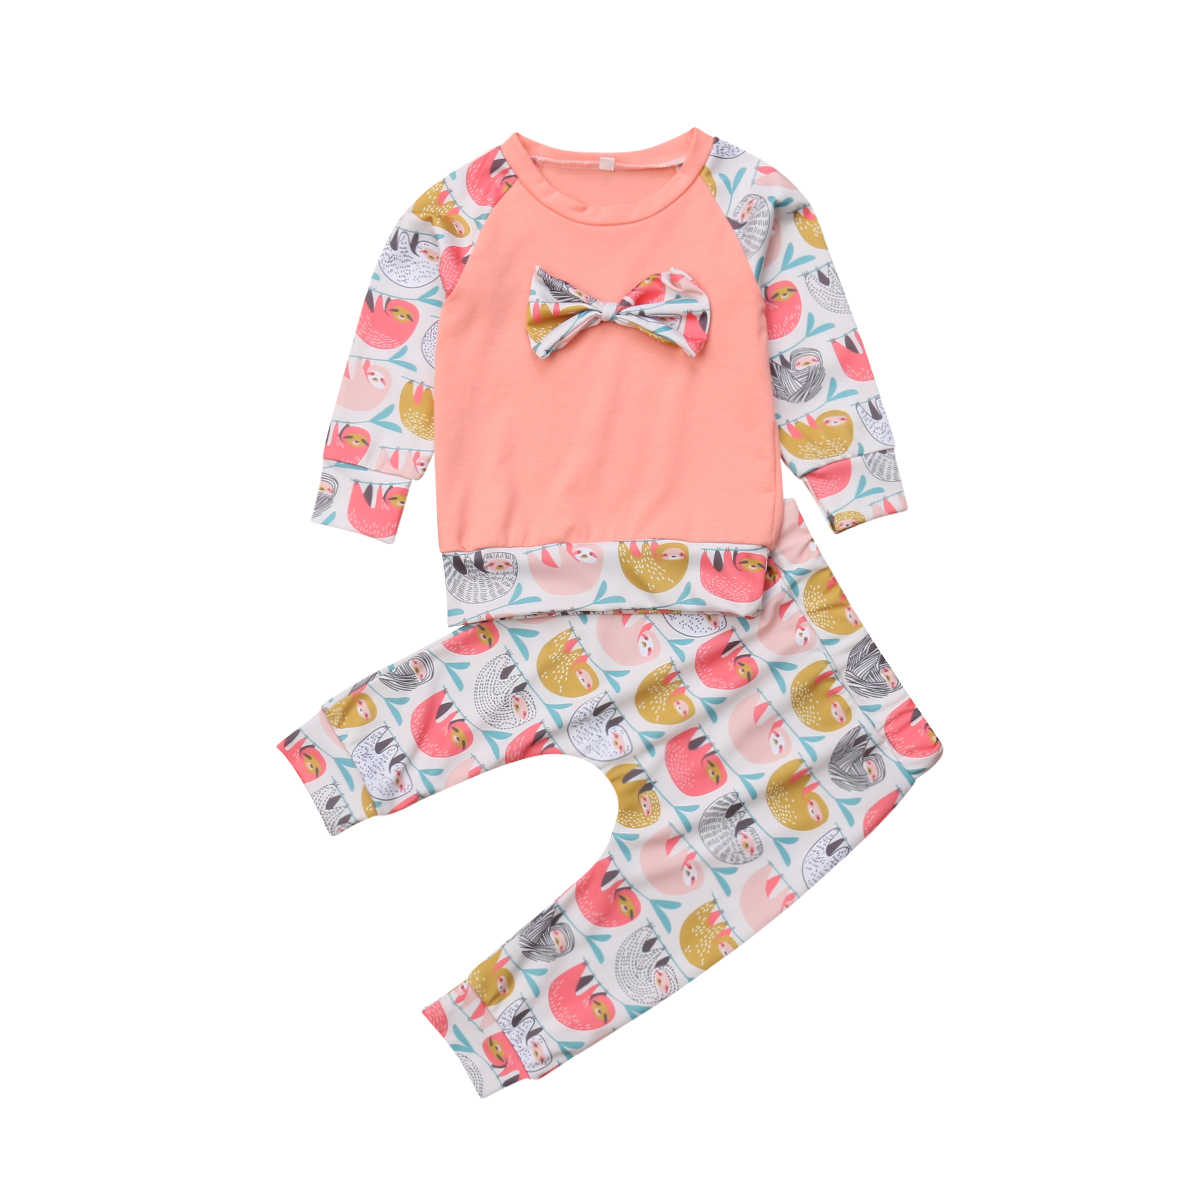 3f6c4ba391c58 Baby Cartoon Sloth Clothes Set Newborn Kids Baby Girls Long Sleeve T-shirt  Top Long